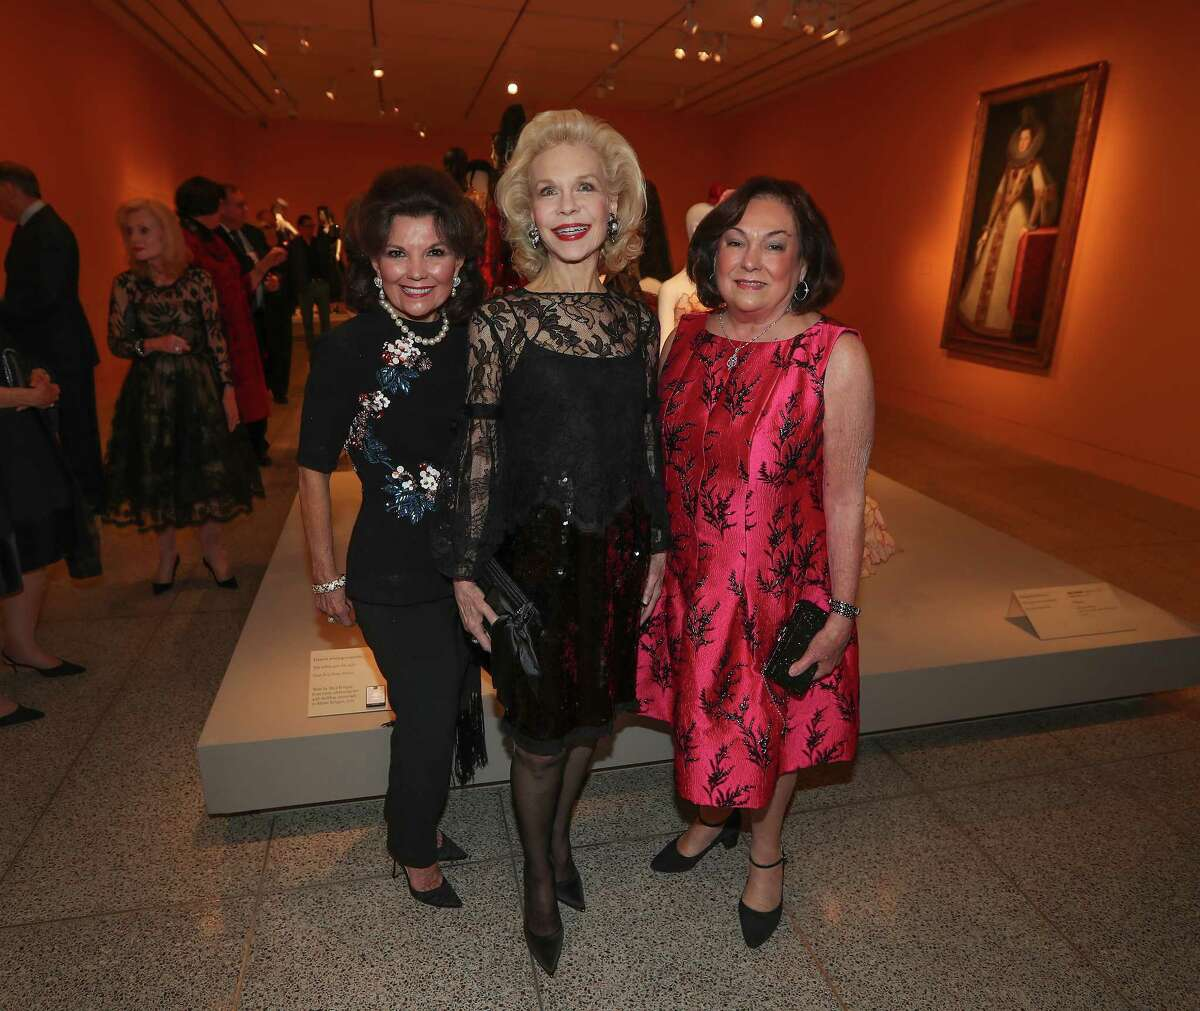 Linda McReynolds, Lynn Wyatt and Rosanette Cullen at the Museum of Fine Arts, Houston exhibition